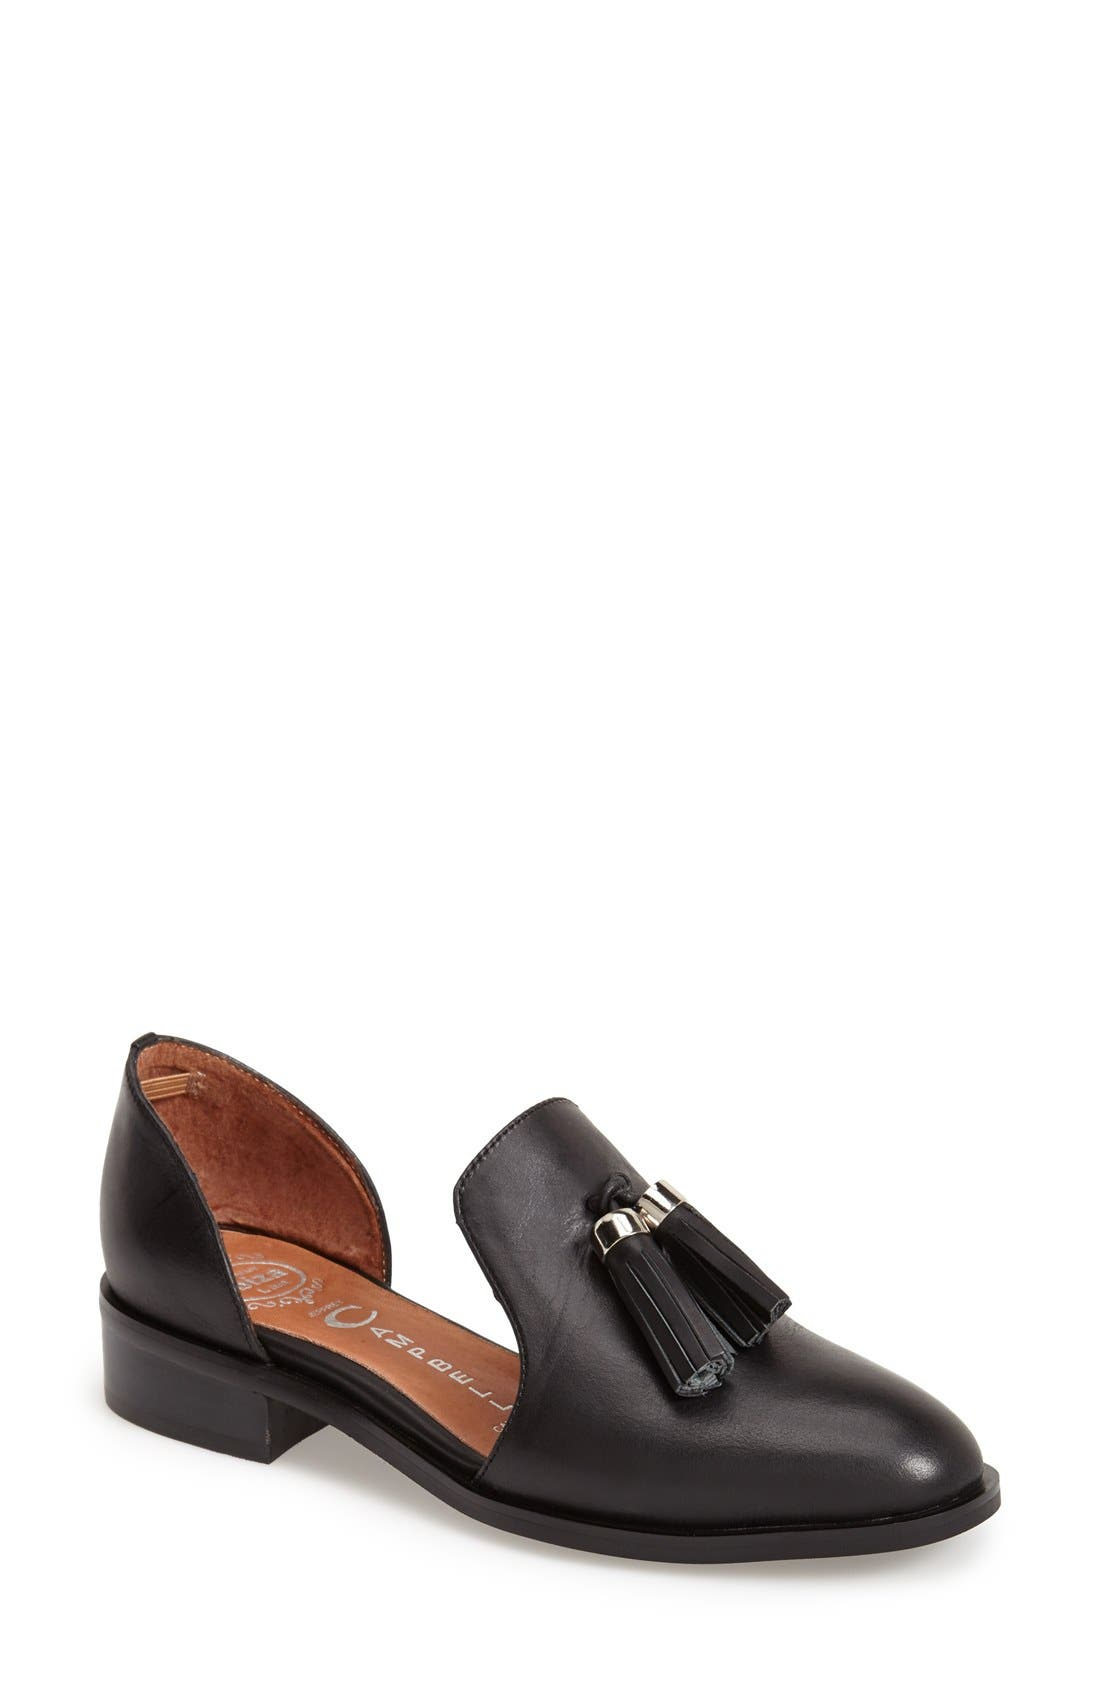 JEFFREY CAMPBELL 'Open Case' Tasseled Leather Flat, Main, color, 001